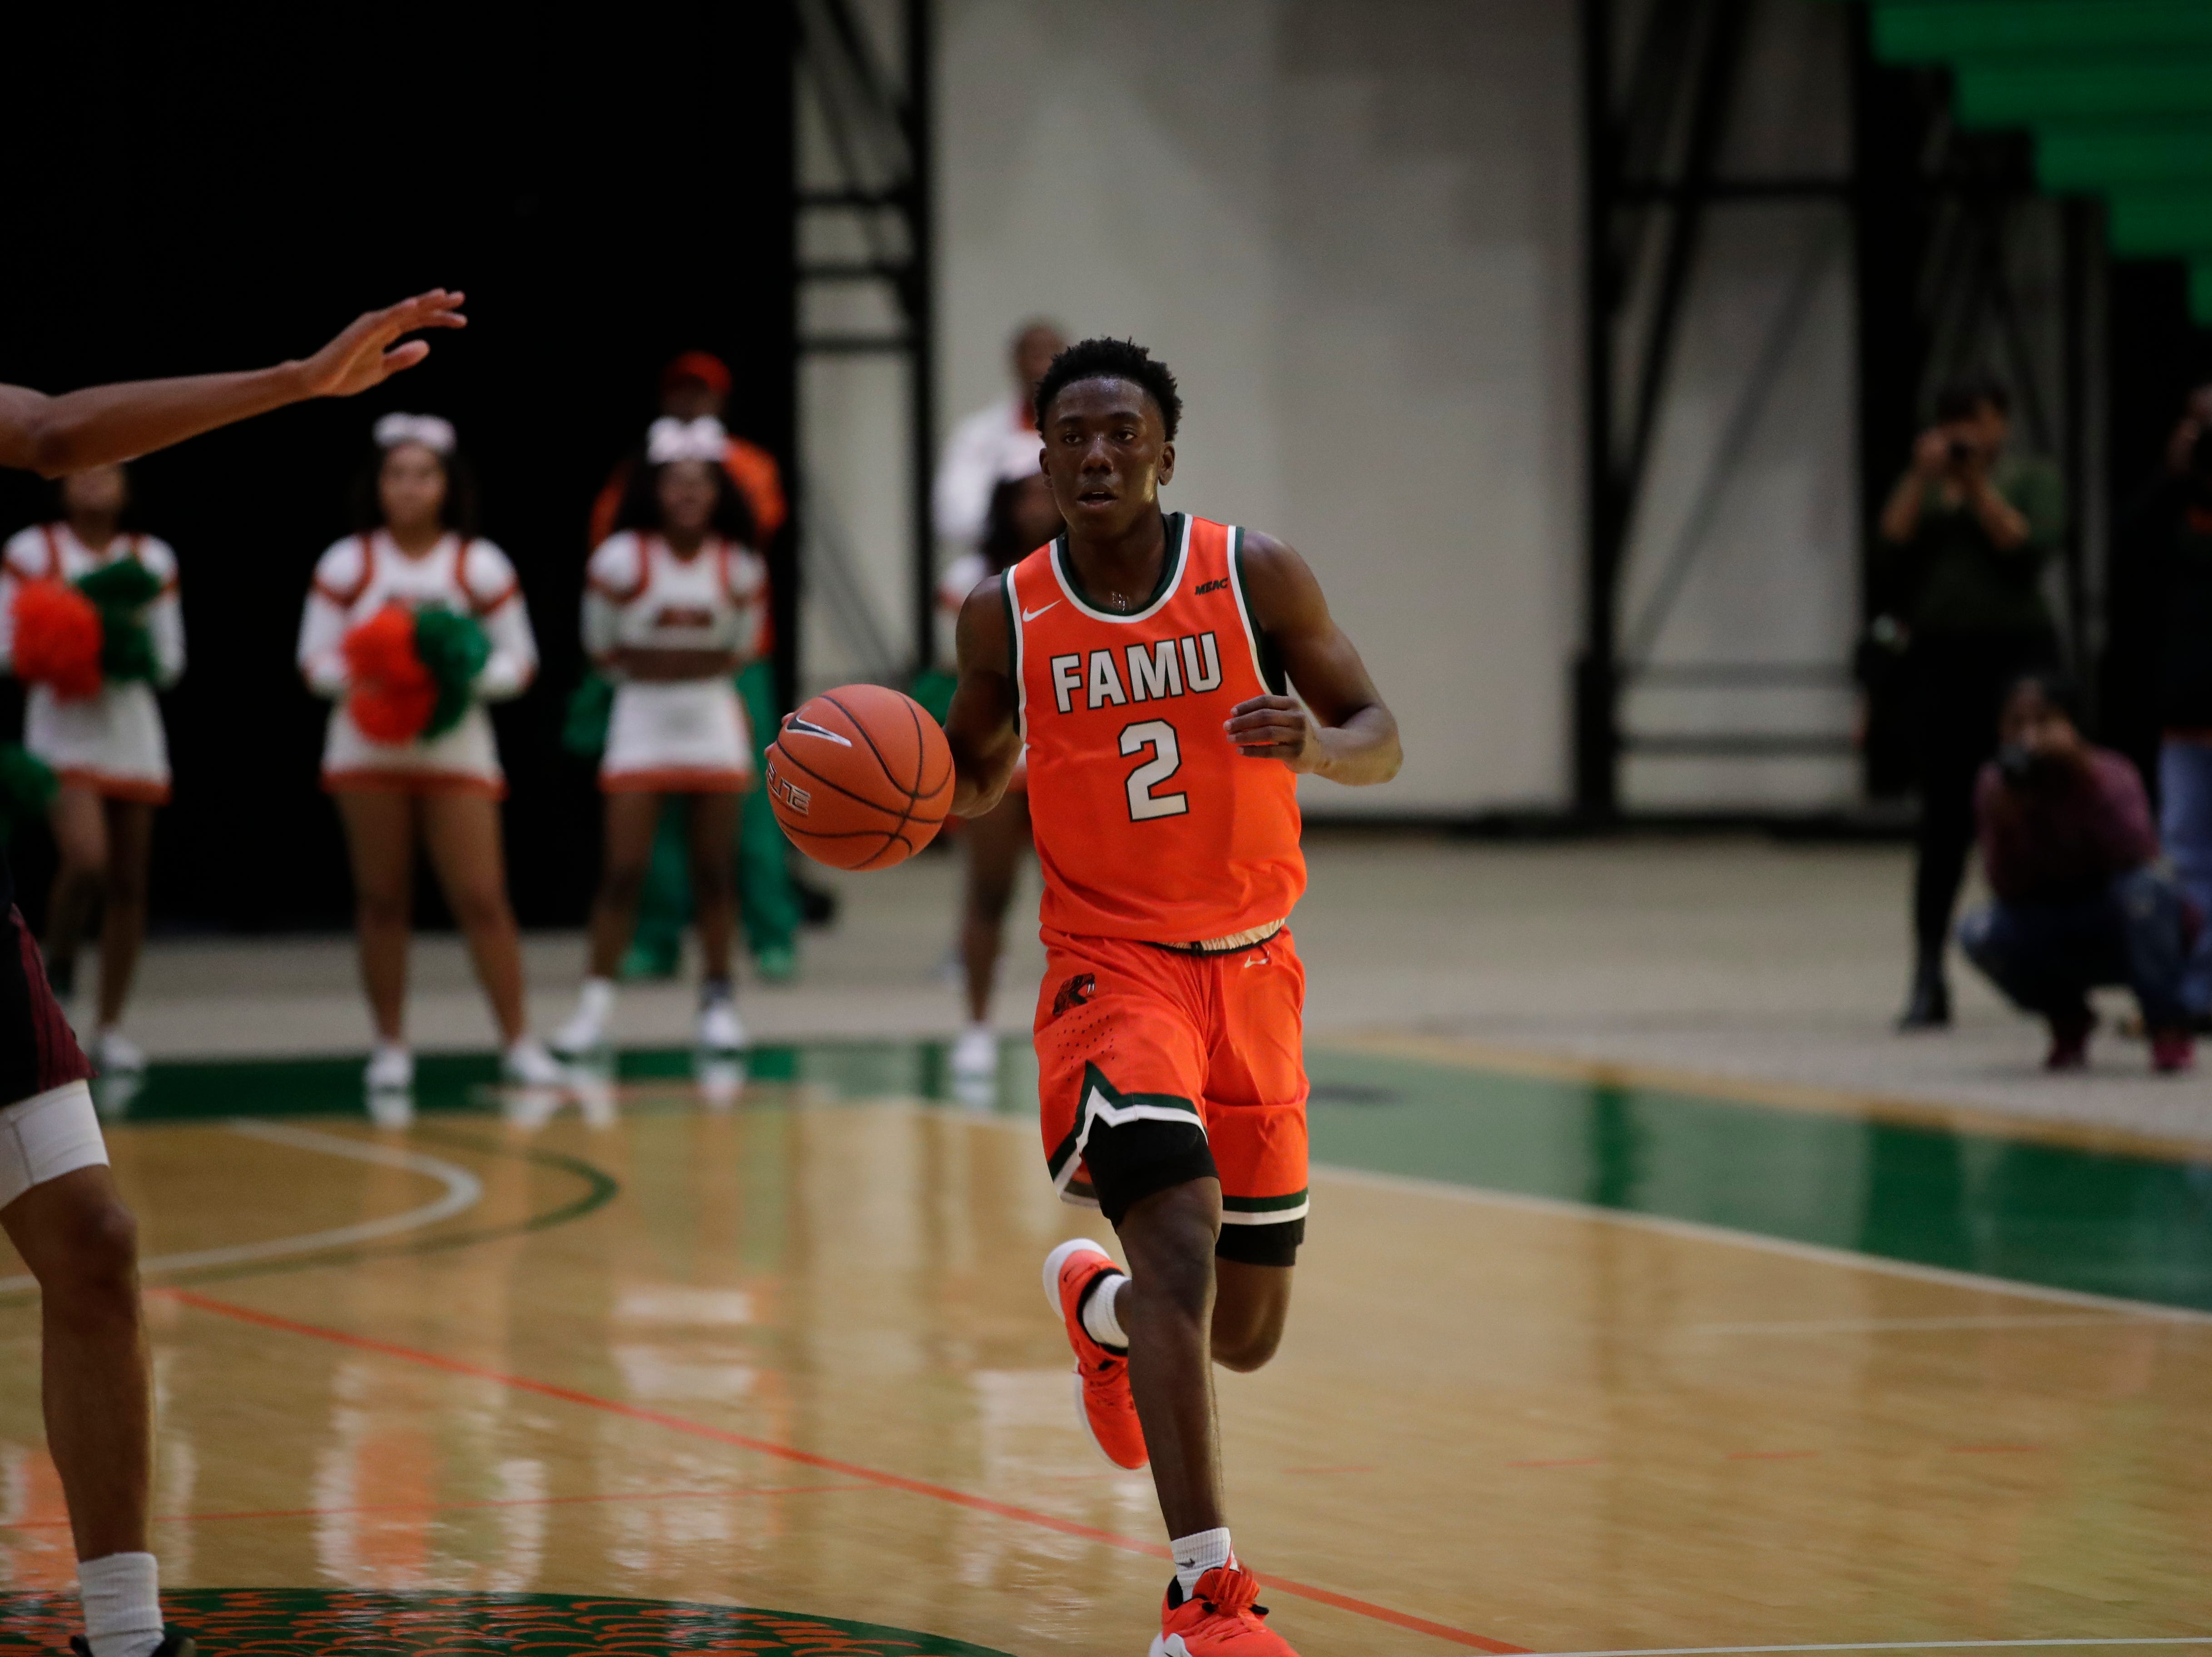 Florida A&M Rattlers guard Kamron Reaves (2) brings the ball up during a game between FAMU and North Carolina Central at the Alfred Lawson Jr. Multipurpose Center Monday, Feb. 4, 2019.